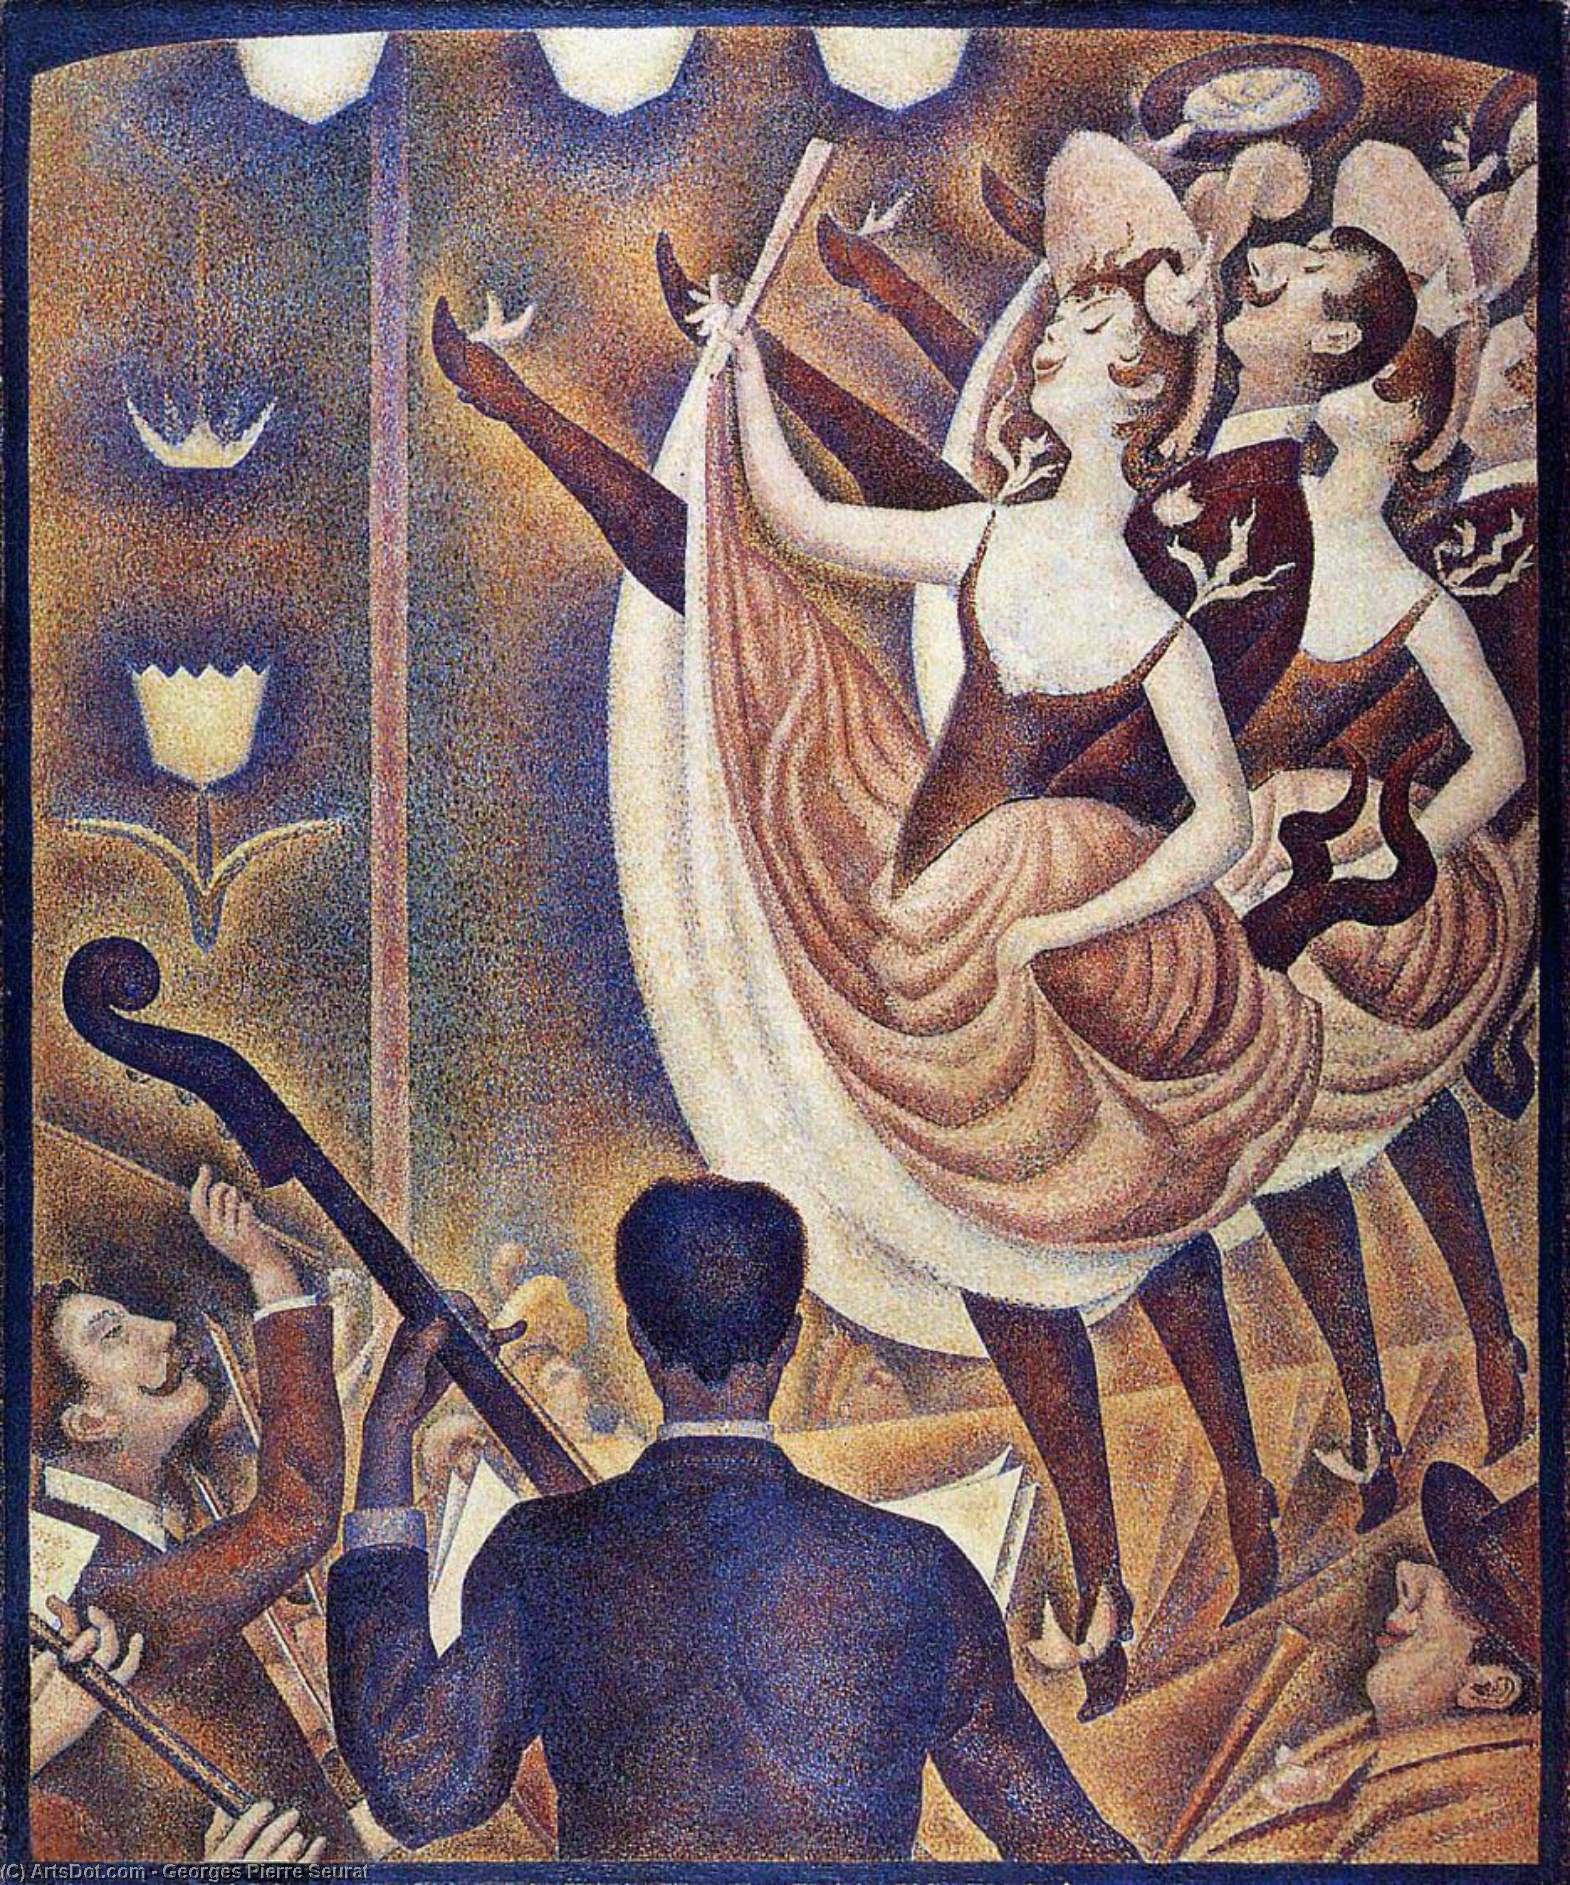 Wikioo.org - The Encyclopedia of Fine Arts - Painting, Artwork by Georges Pierre Seurat - Chahut